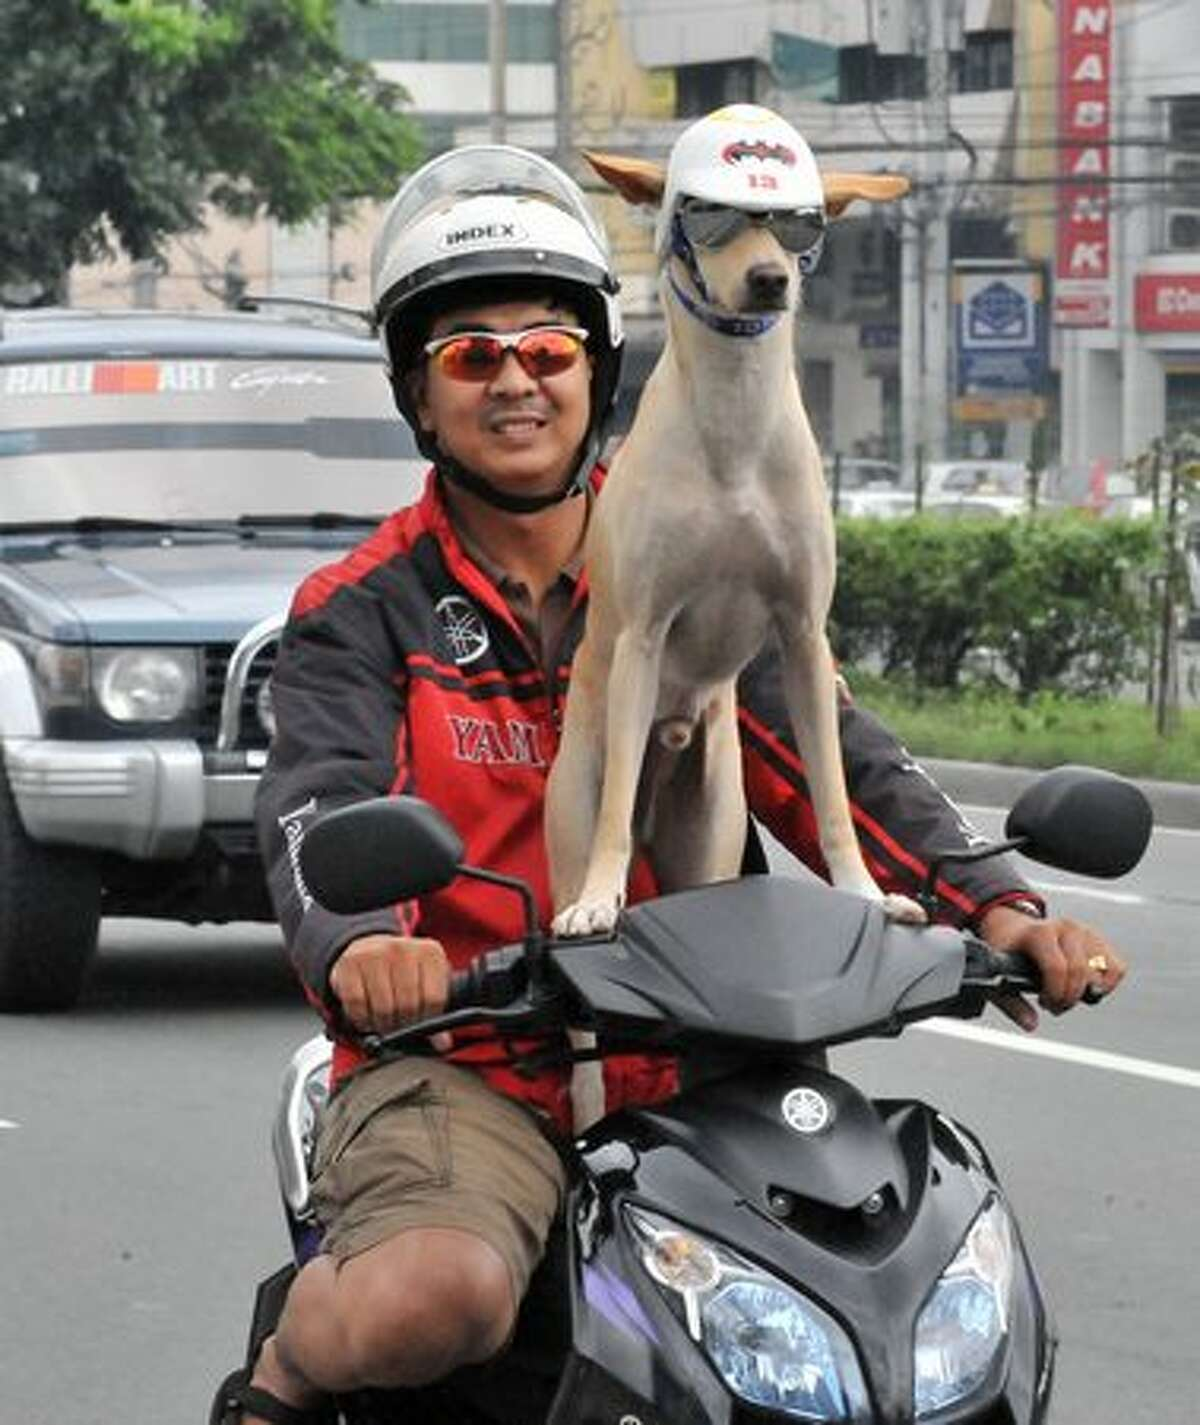 Motorist Gilbert rides on a motorcycle with his pet dog Bogie as they travel on a road in Manila.